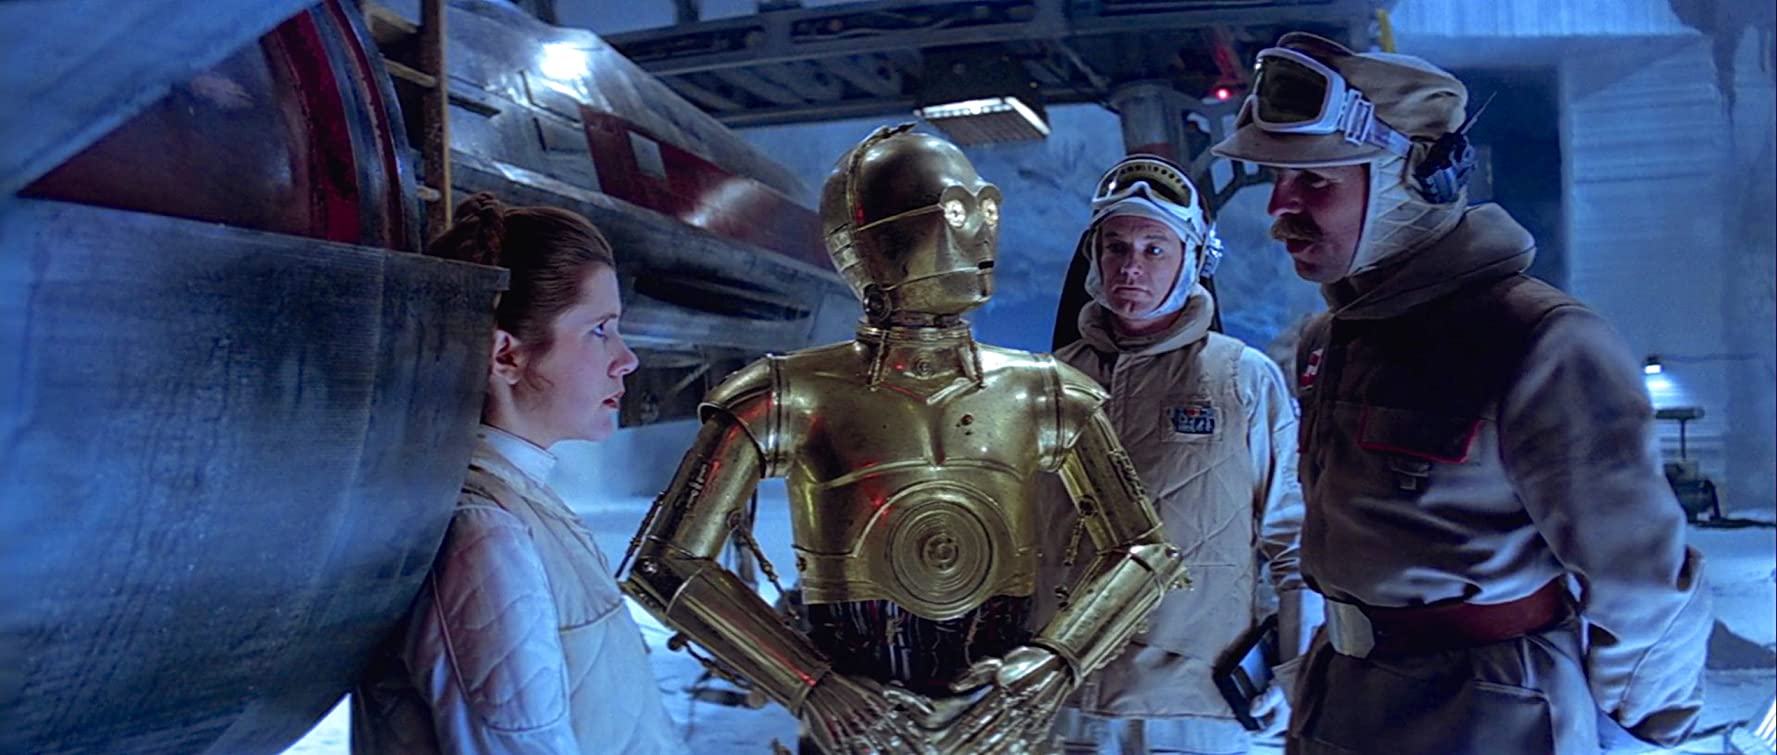 Anthony Daniels, Carrie Fisher, John Ratzenberger, and Jack McKenzie in Star Wars: Episode V - The Empire Strikes Back (1980)